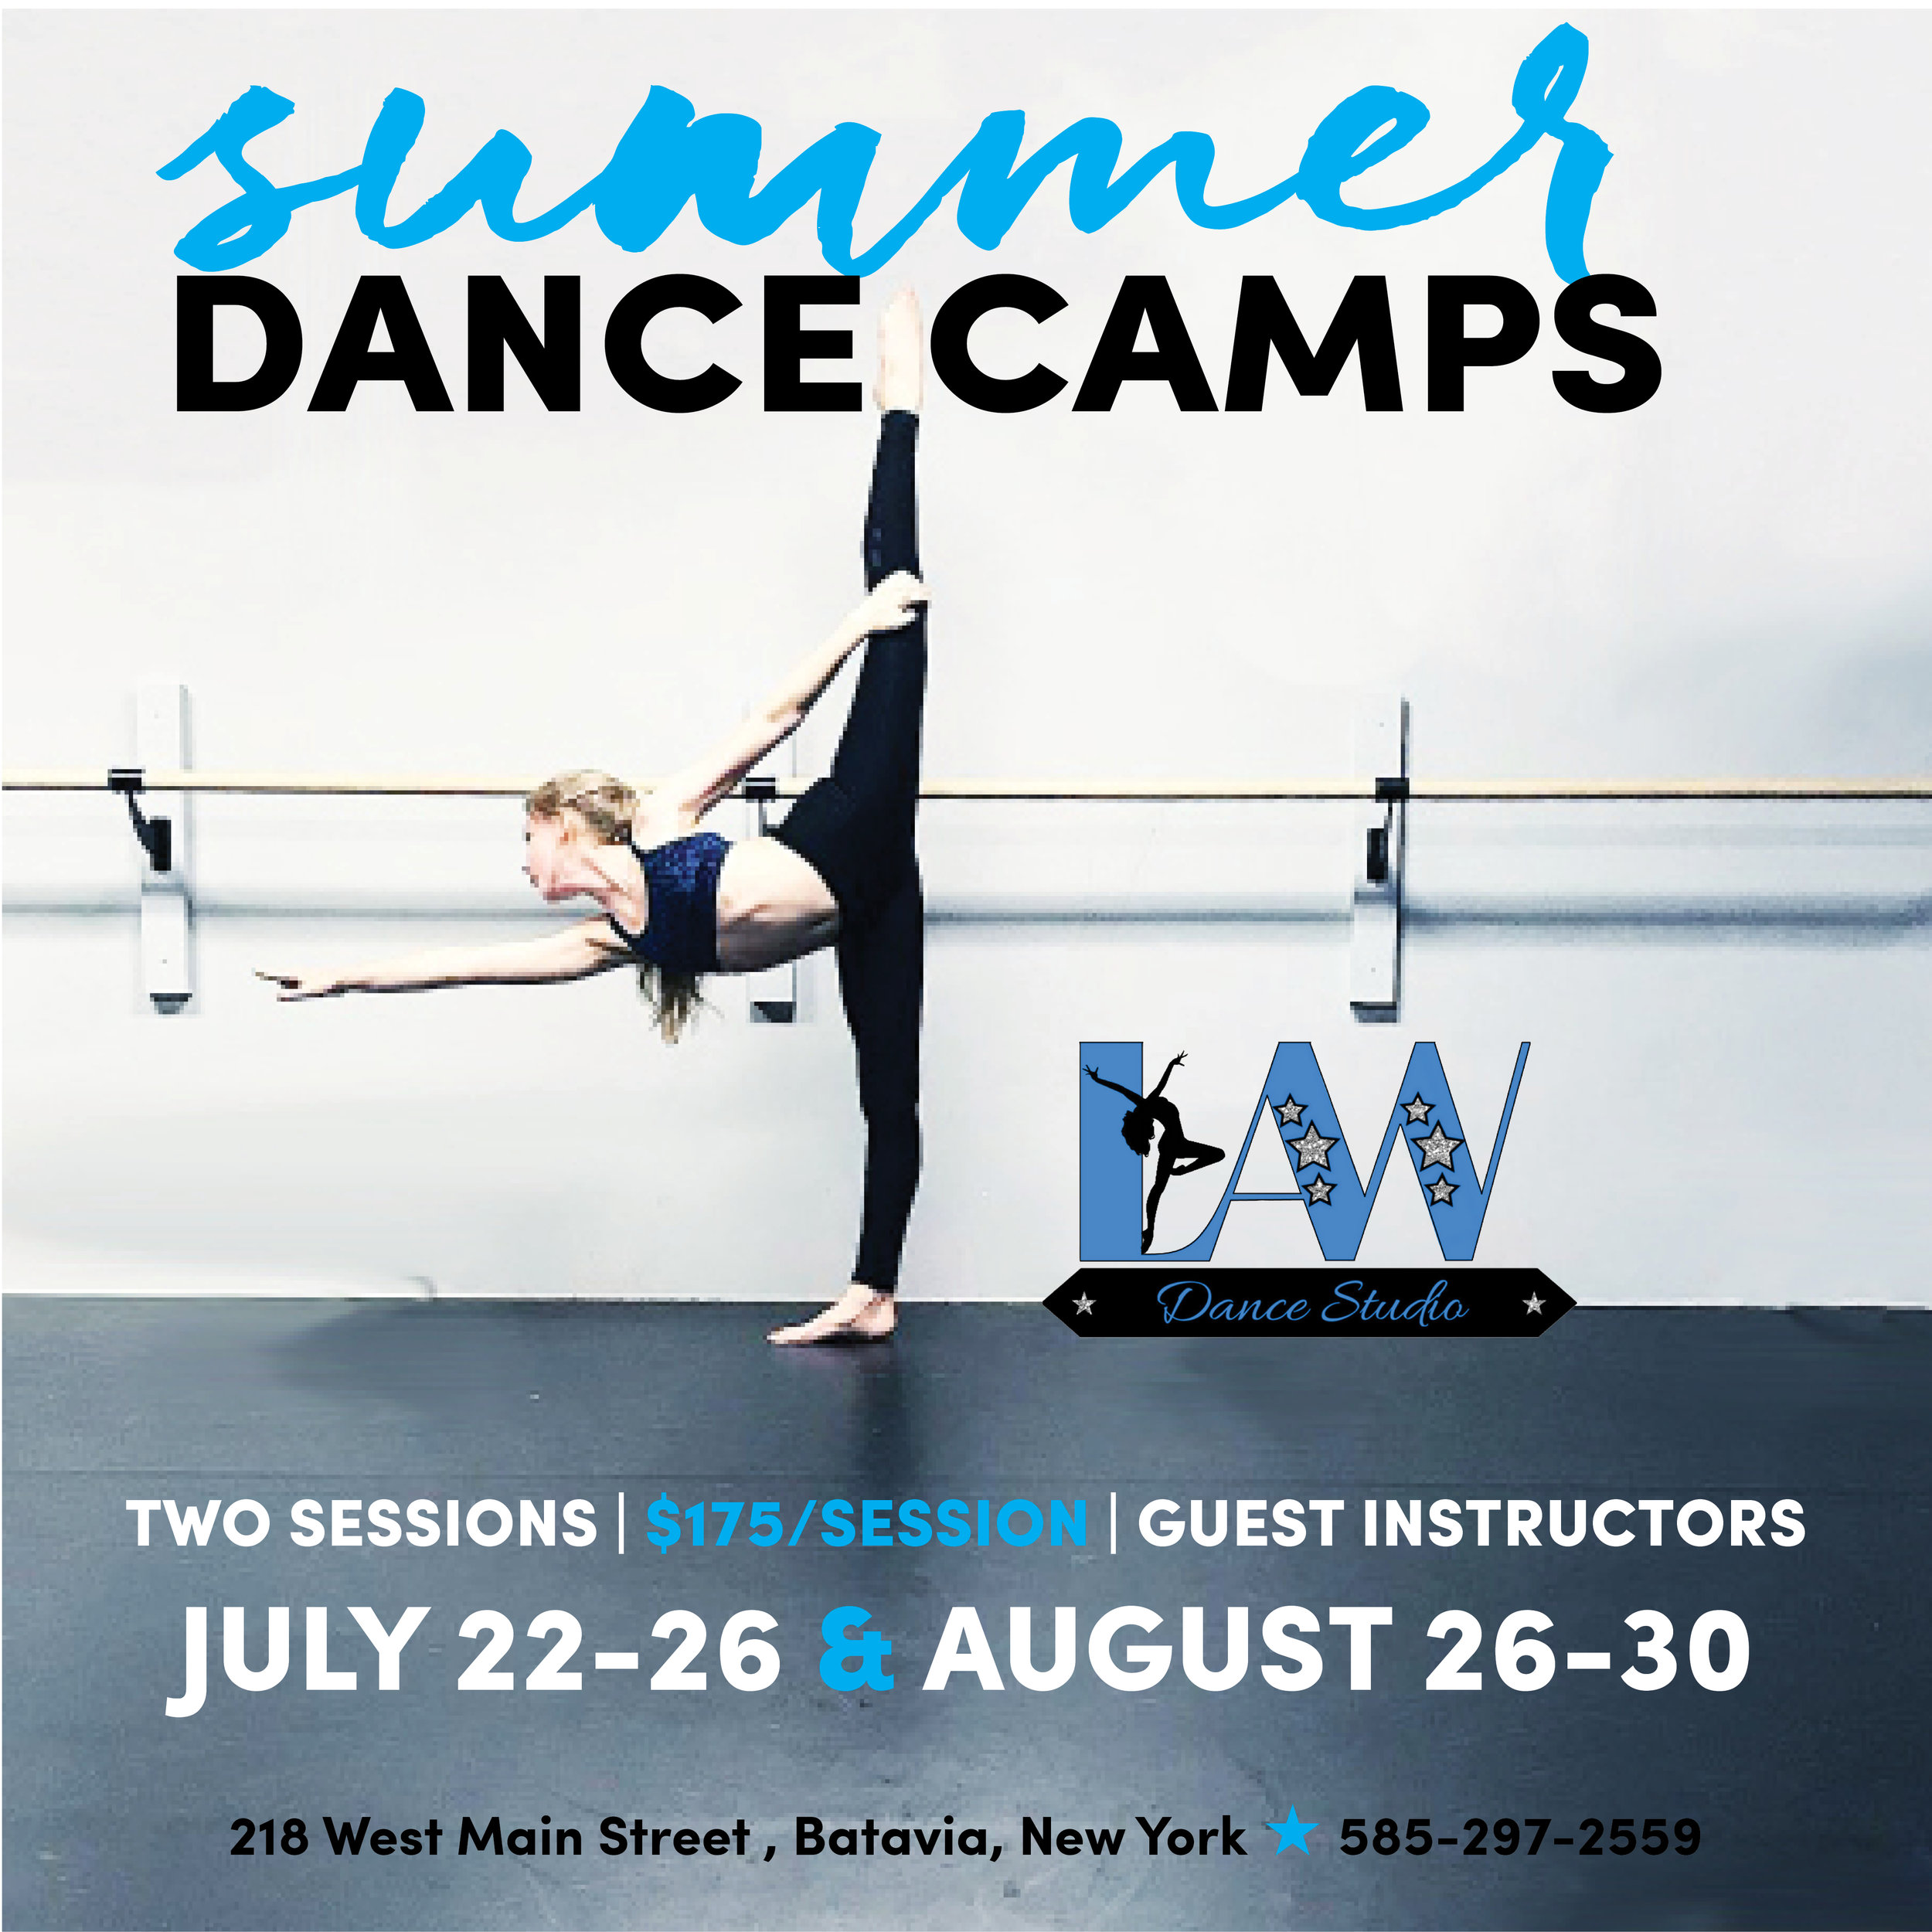 Dance Camp Sessions - Two sessions available.